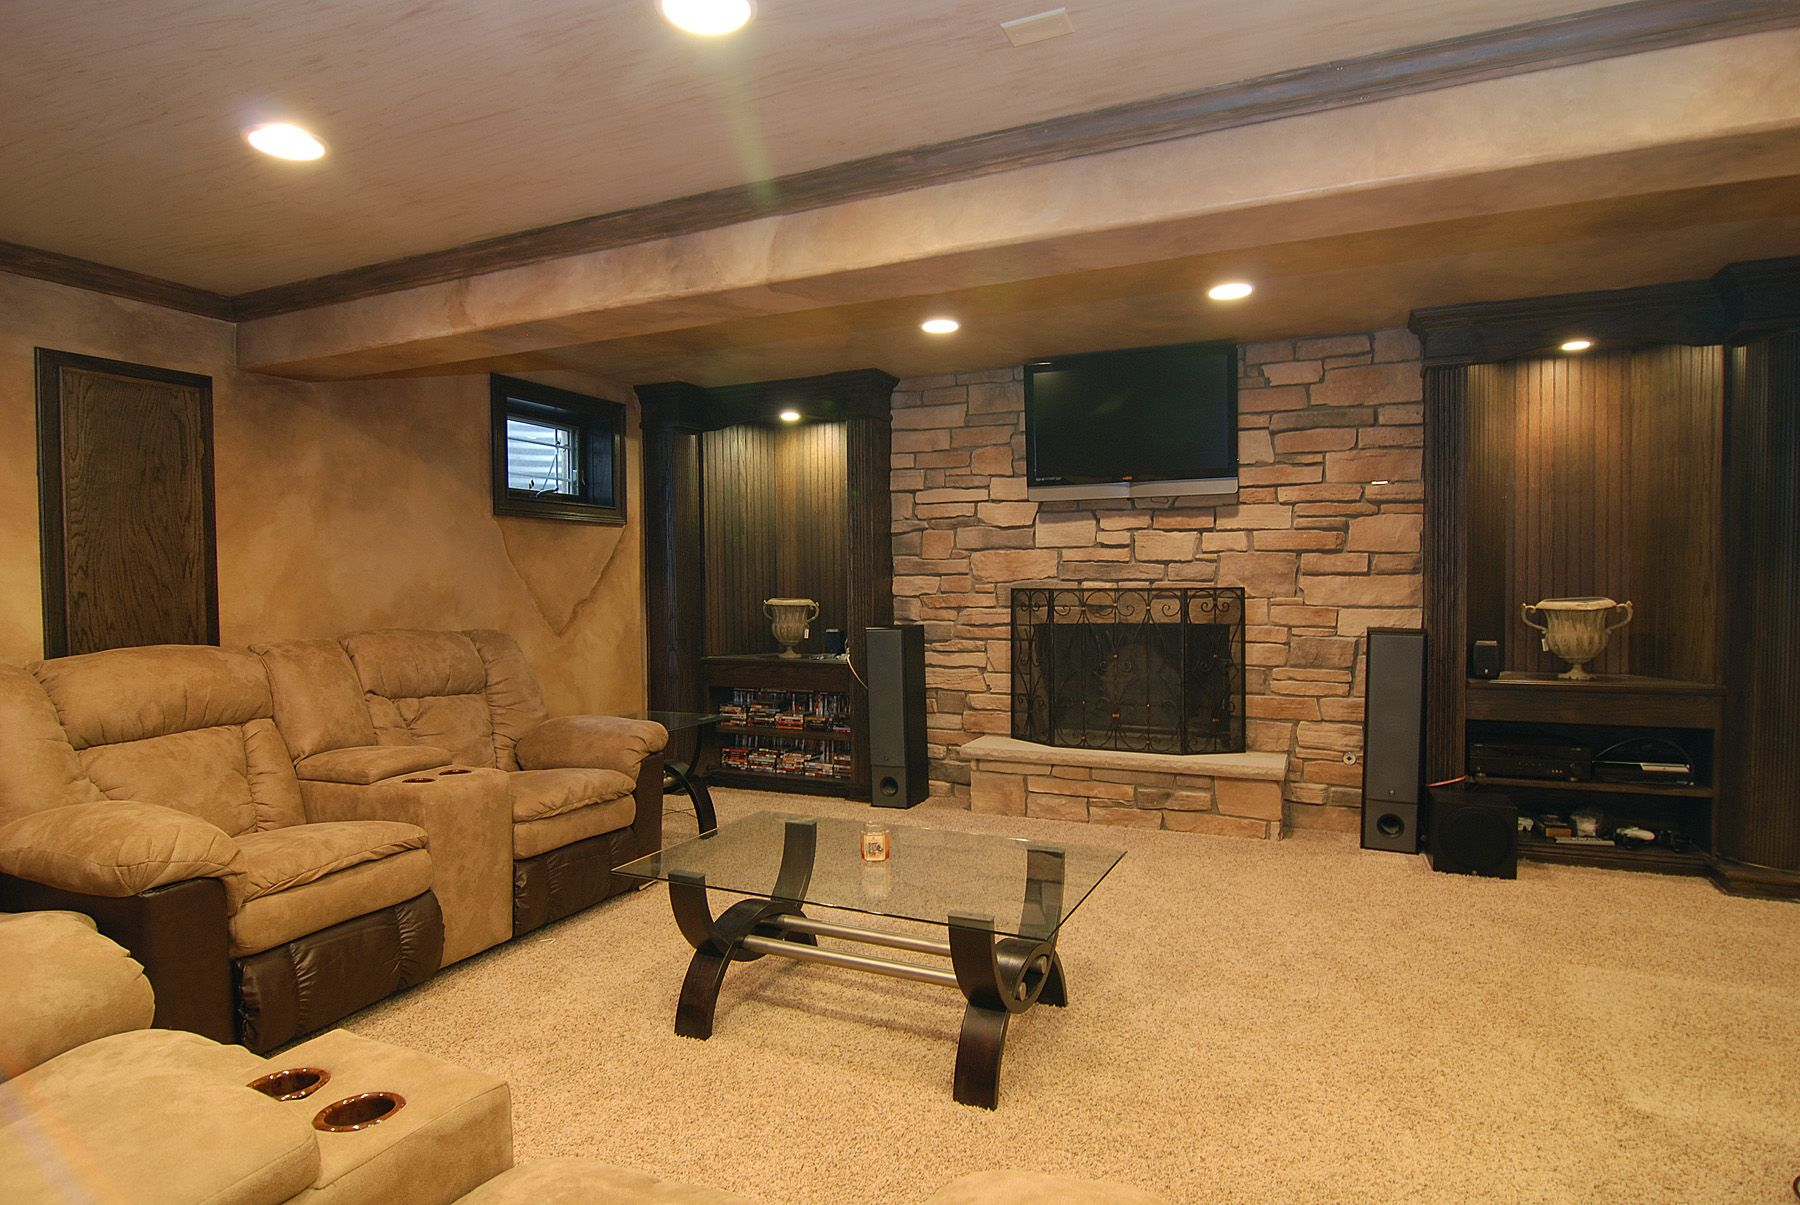 Make Your Finished Basement Amazing! We Have Gathered 25 Inspiring Finished Basement  Designs To Inspire You To Create The Basement Of Your Dreams!